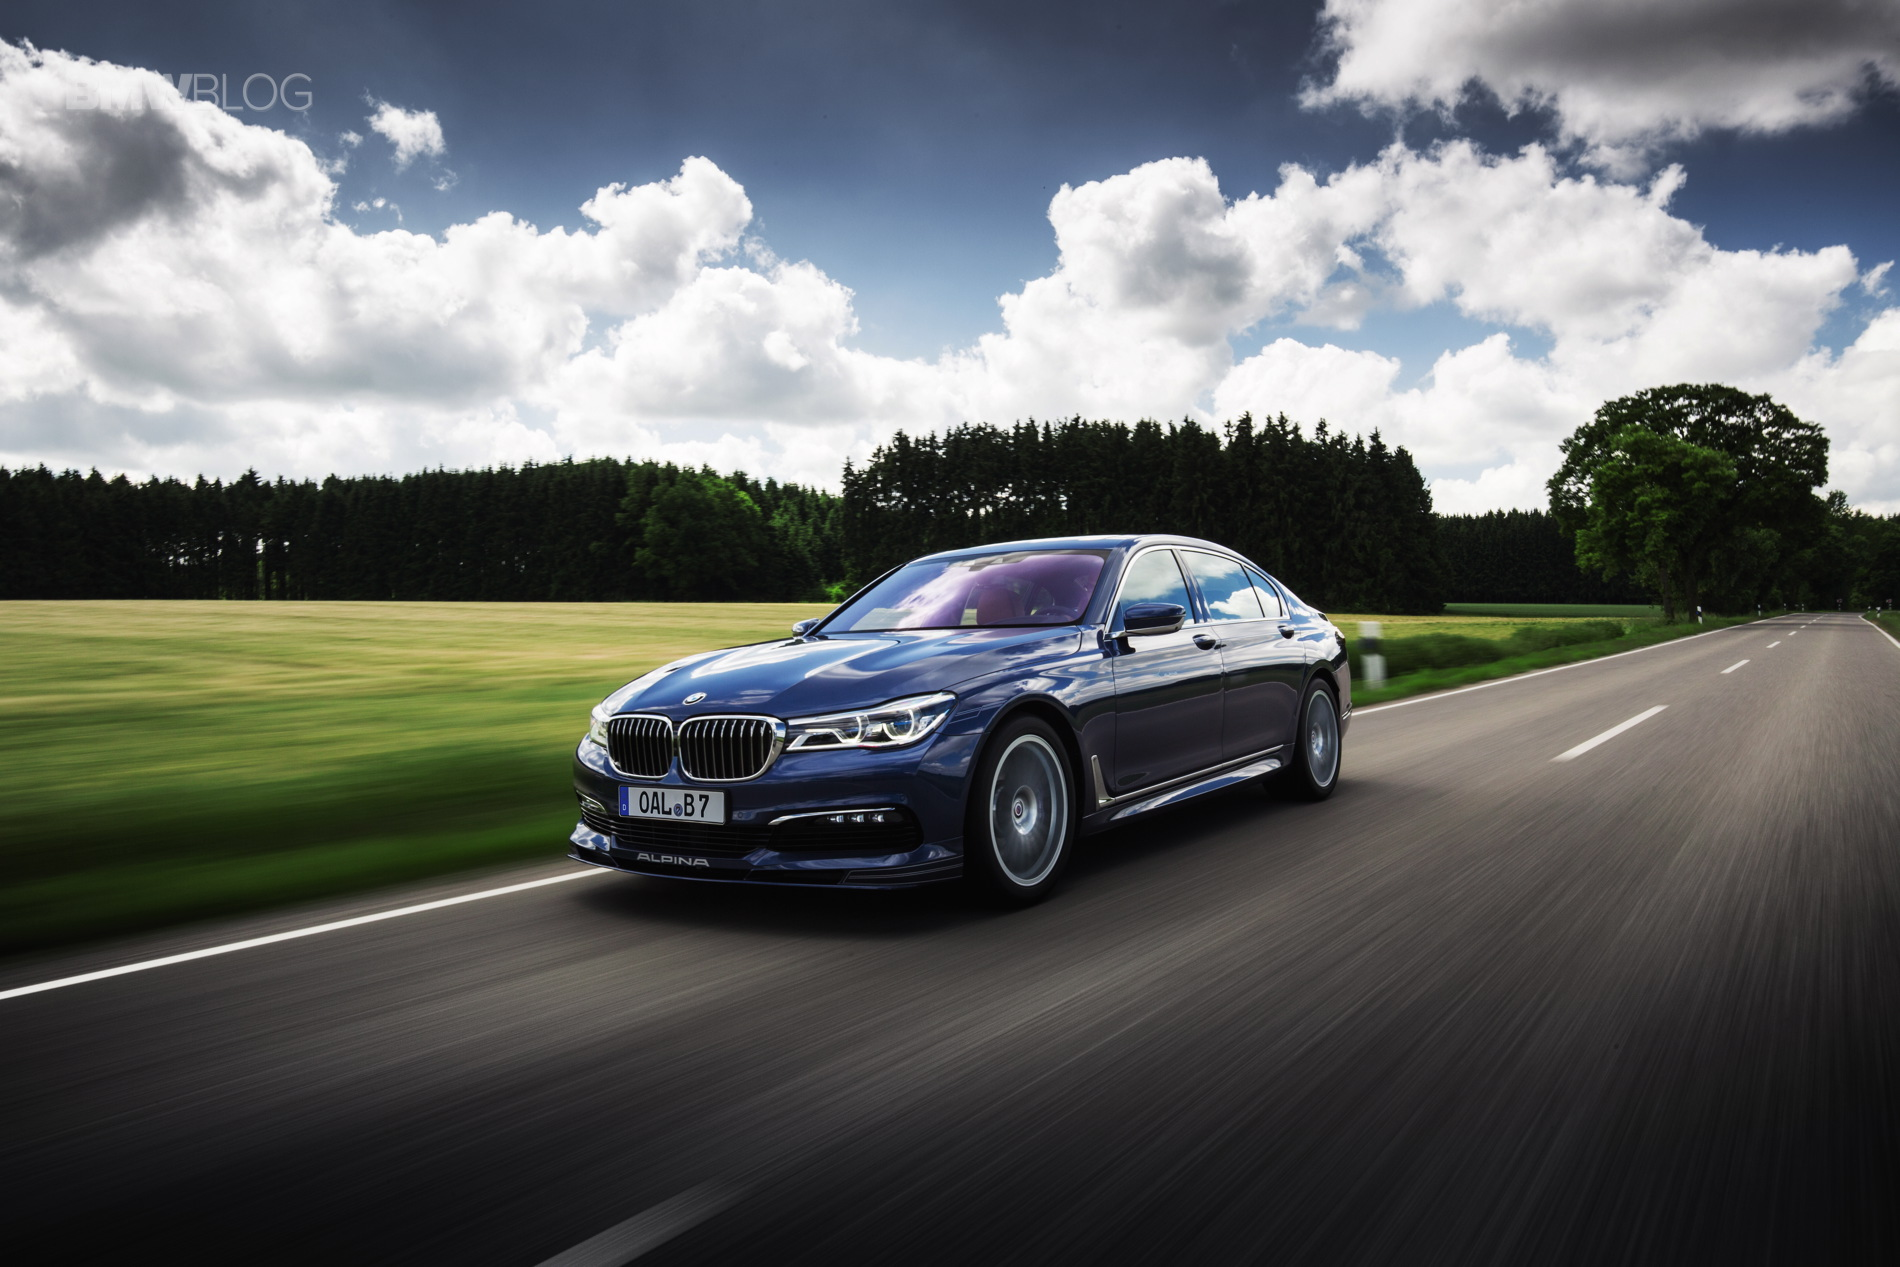 2017 Alpina B7 New Photo Gallery